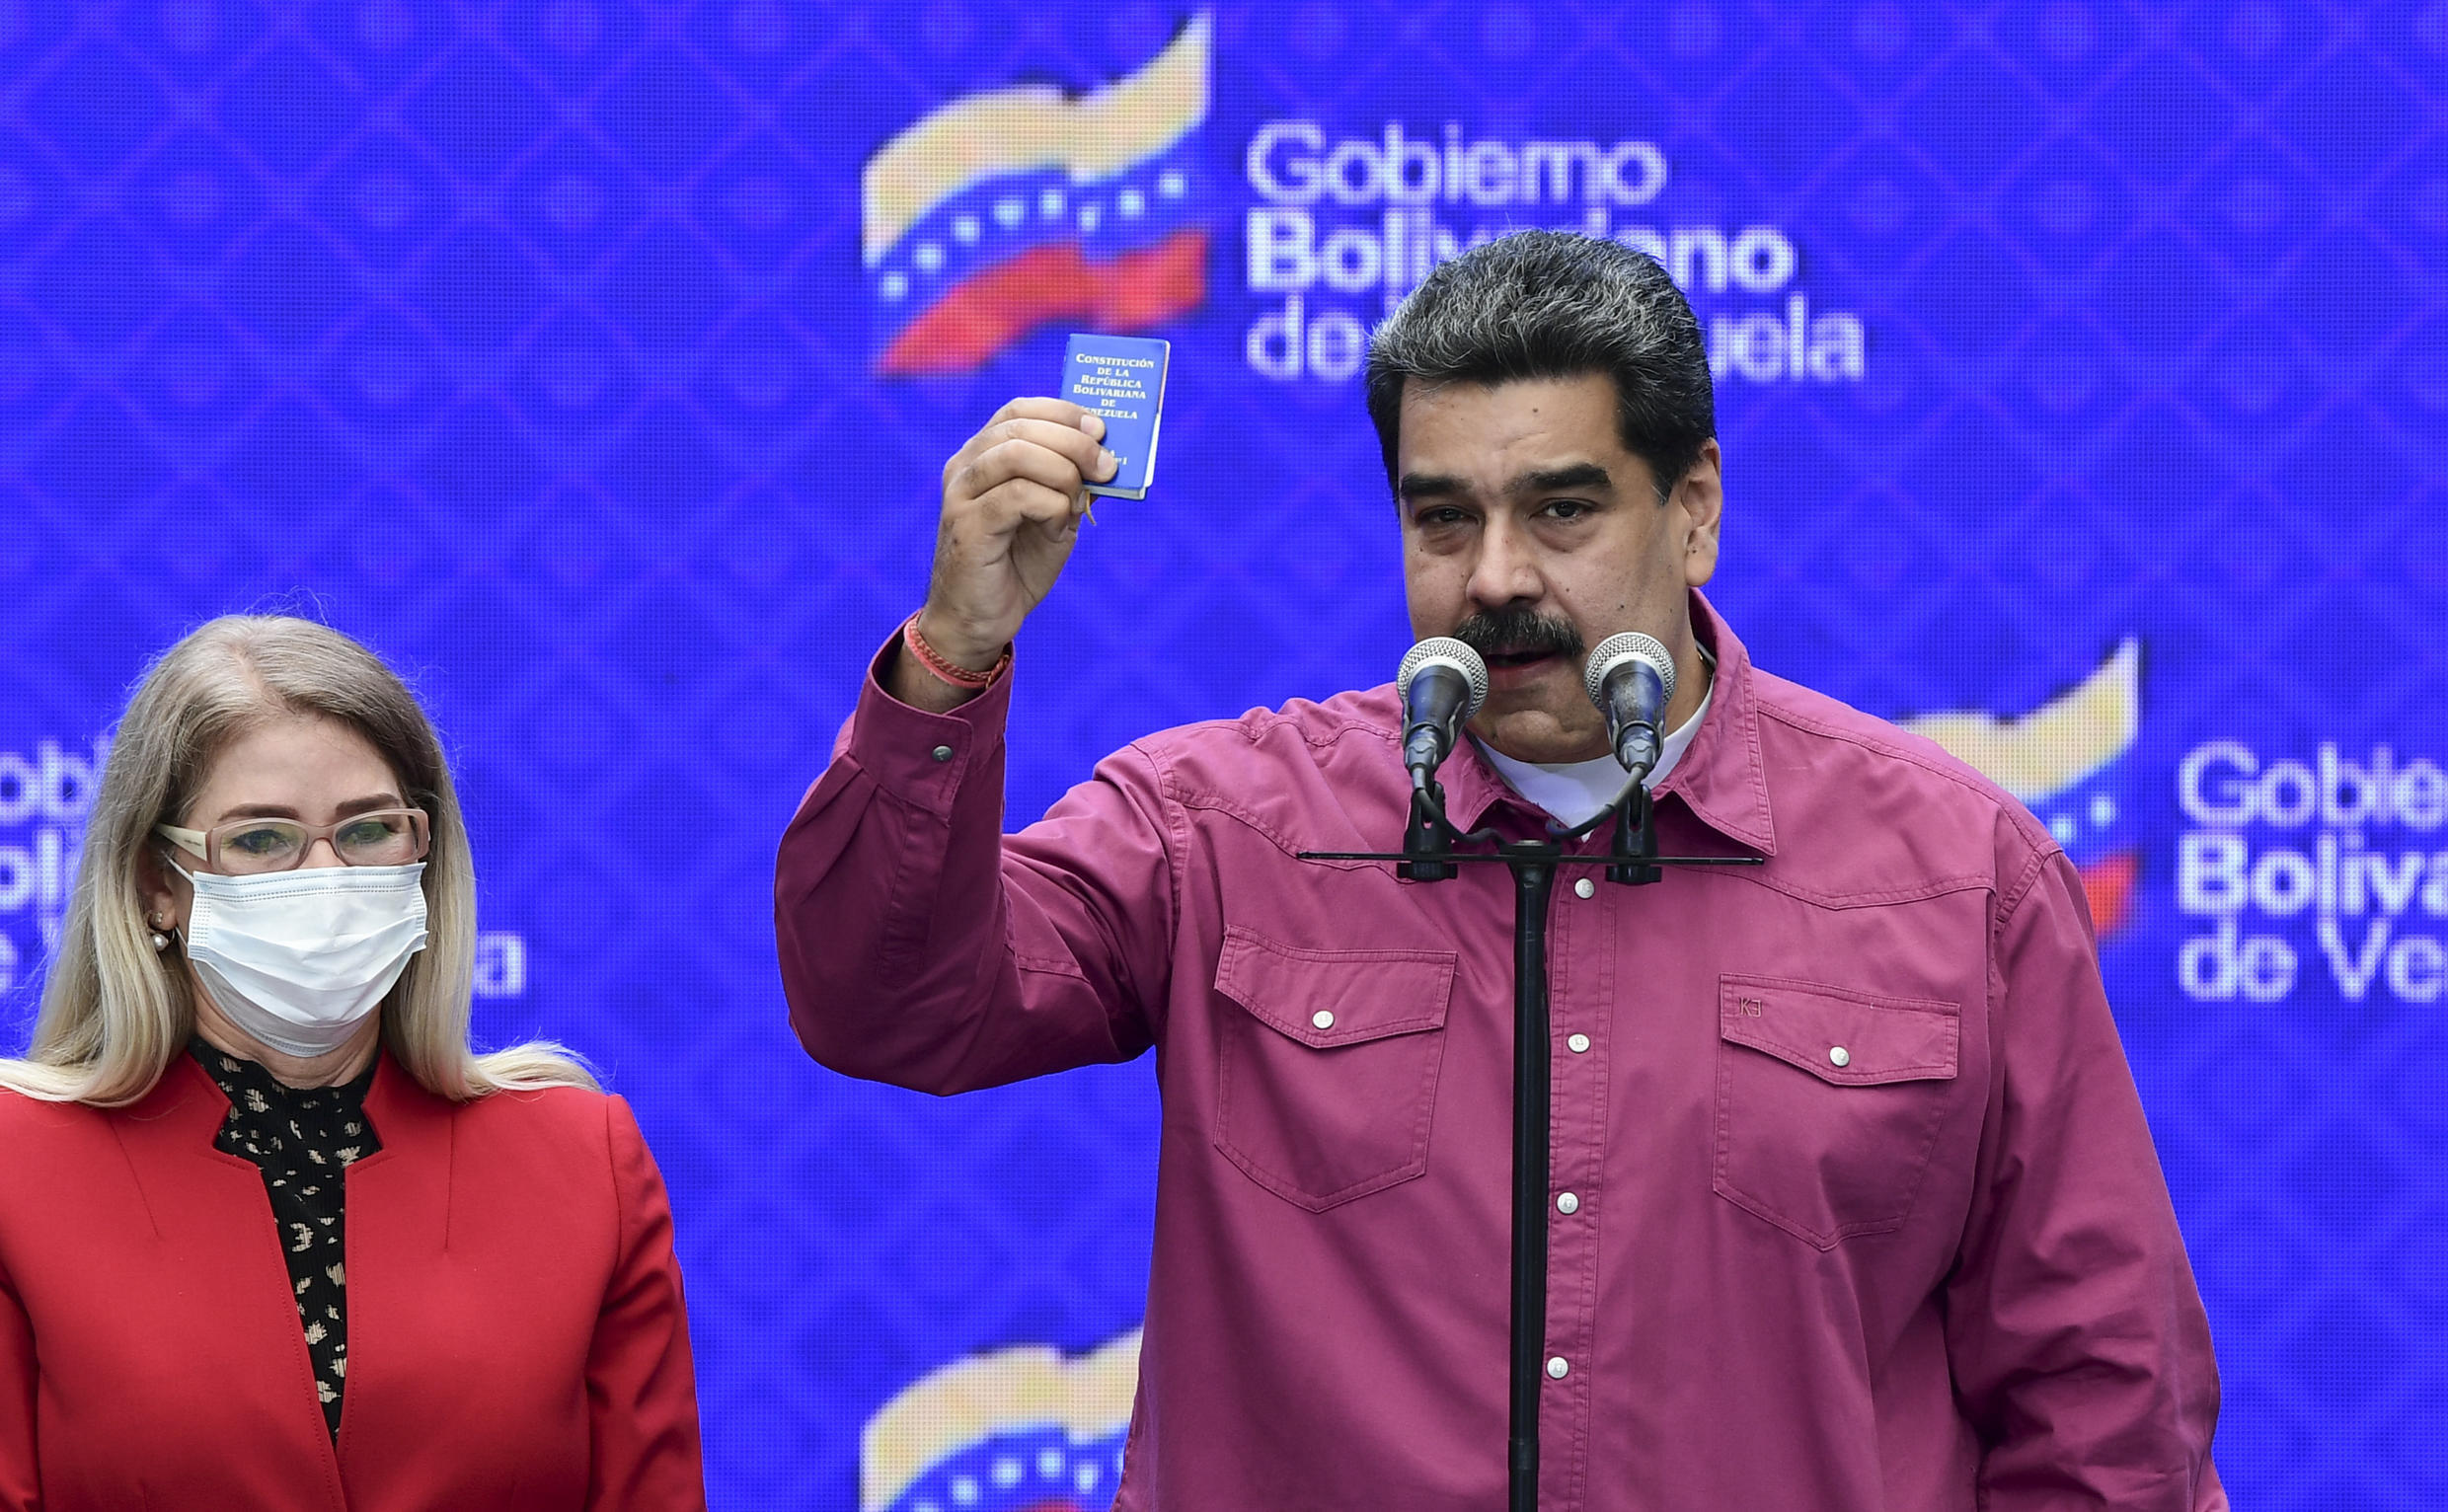 Venezuelan President Nicolas Maduro with his wife Cilia Flores gestures to photographers as he votes in legislative elections in Caracas, on December 6, 2020